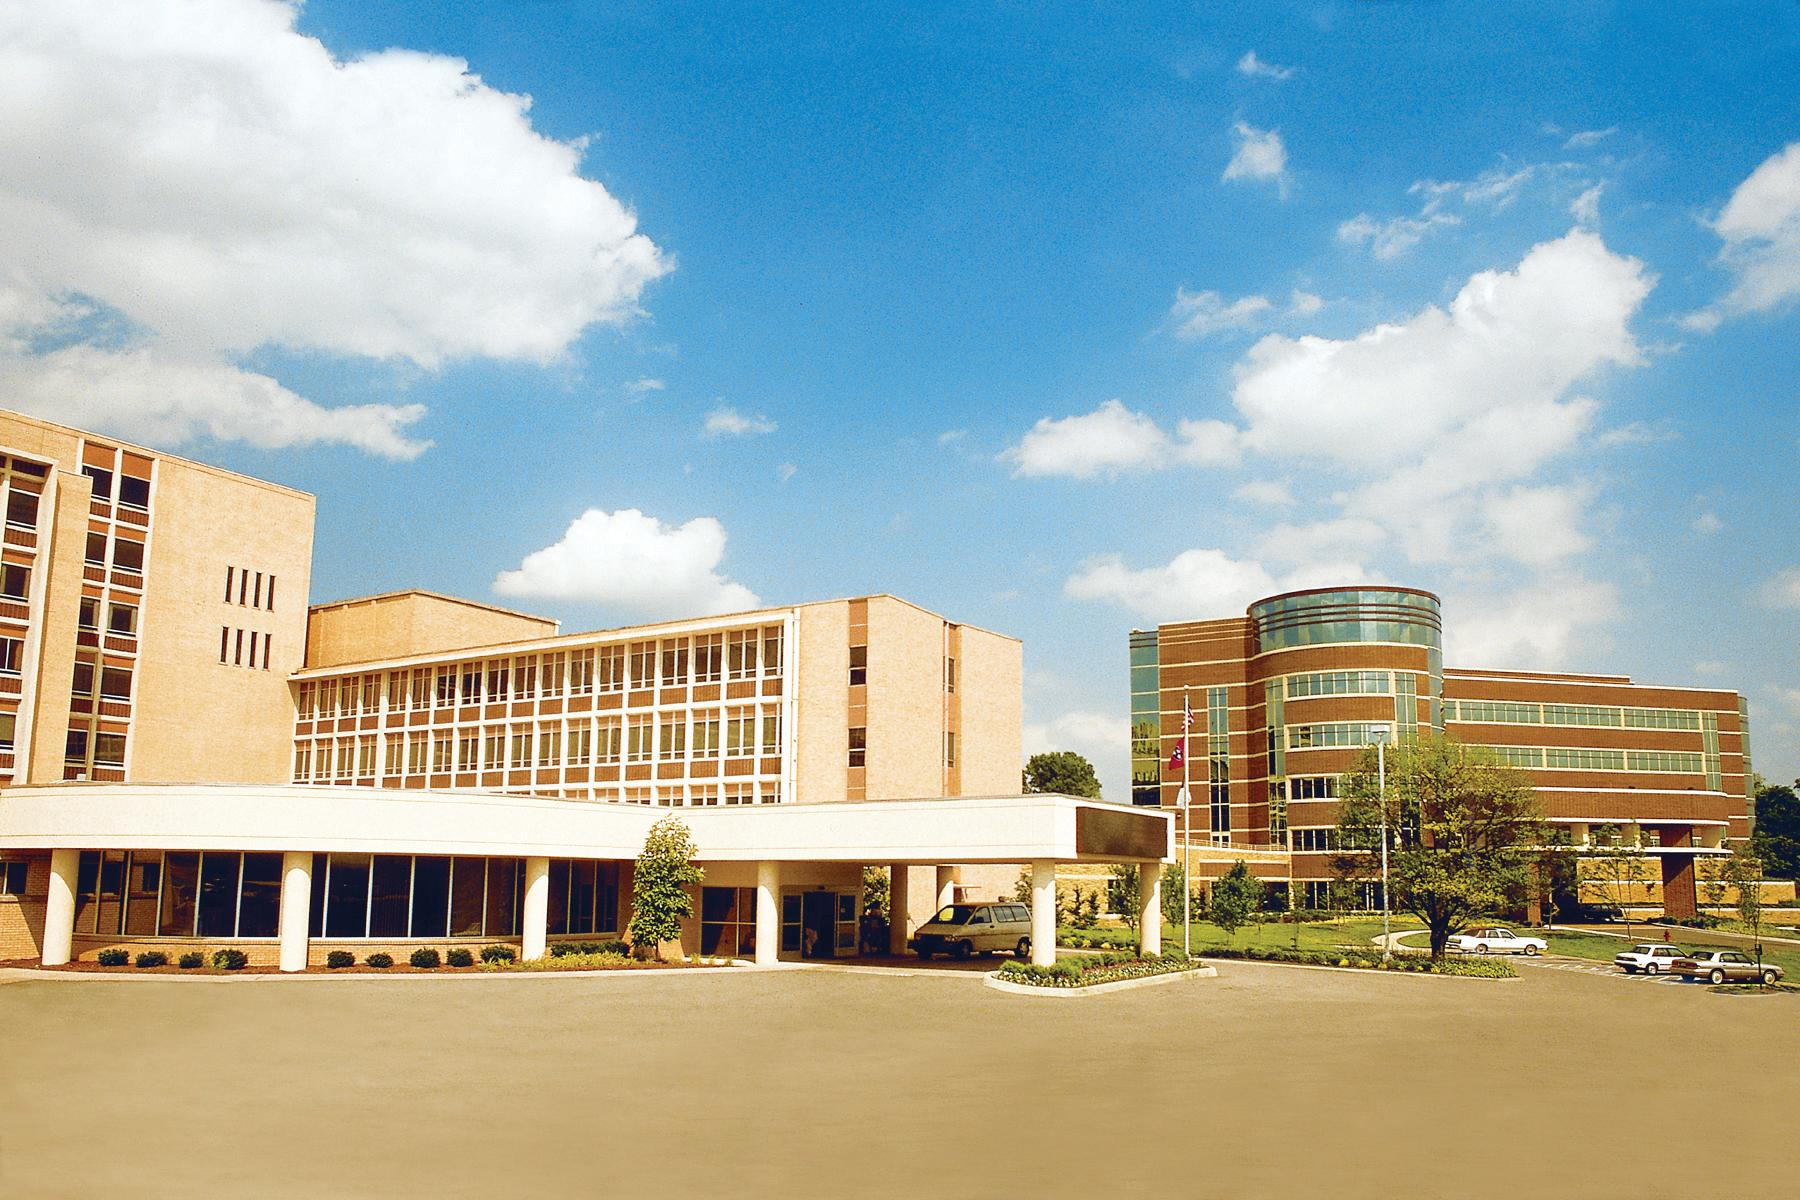 TriStar Skyline Madison Campus image 1